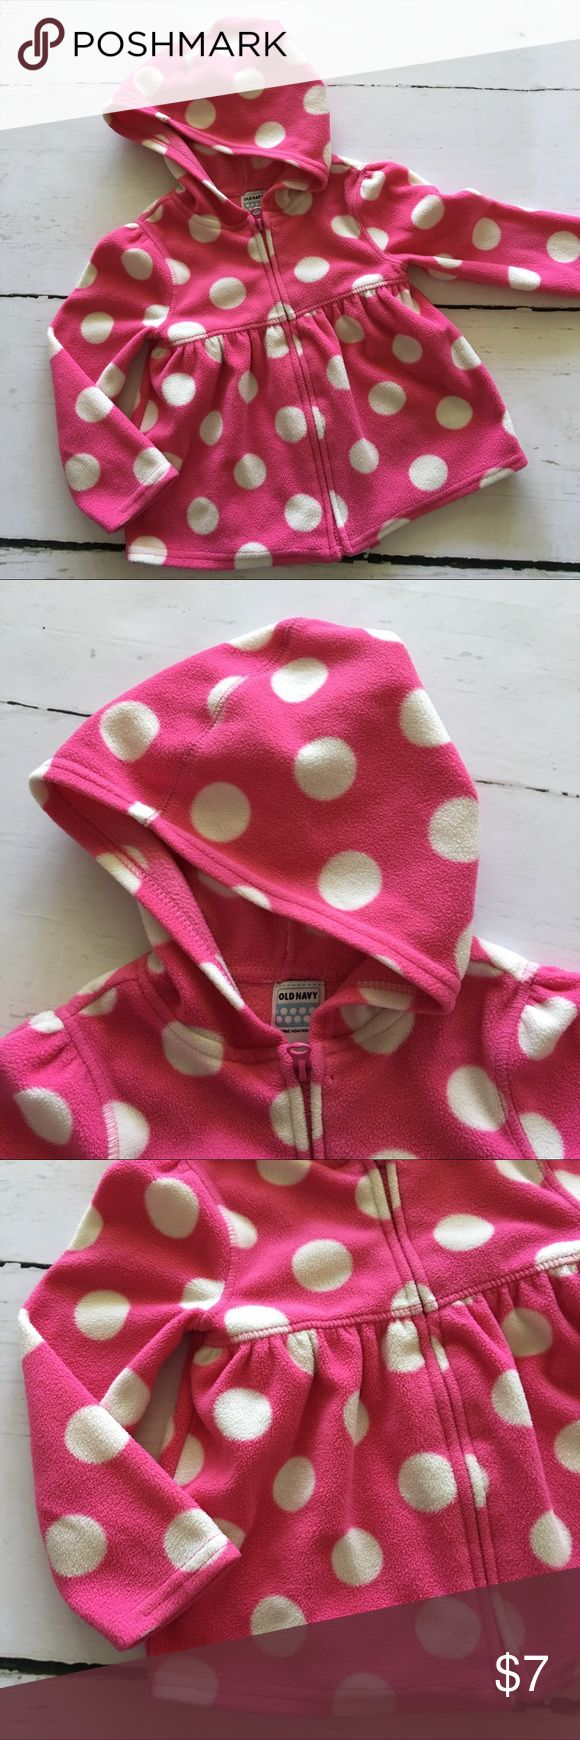 💗Old Navy Hoodie💗 Cute fleece polka dot zip up hoodie by Old Navy. Worn but still in great shape! Old Navy Shirts & Tops Sweatshirts & Hoodies